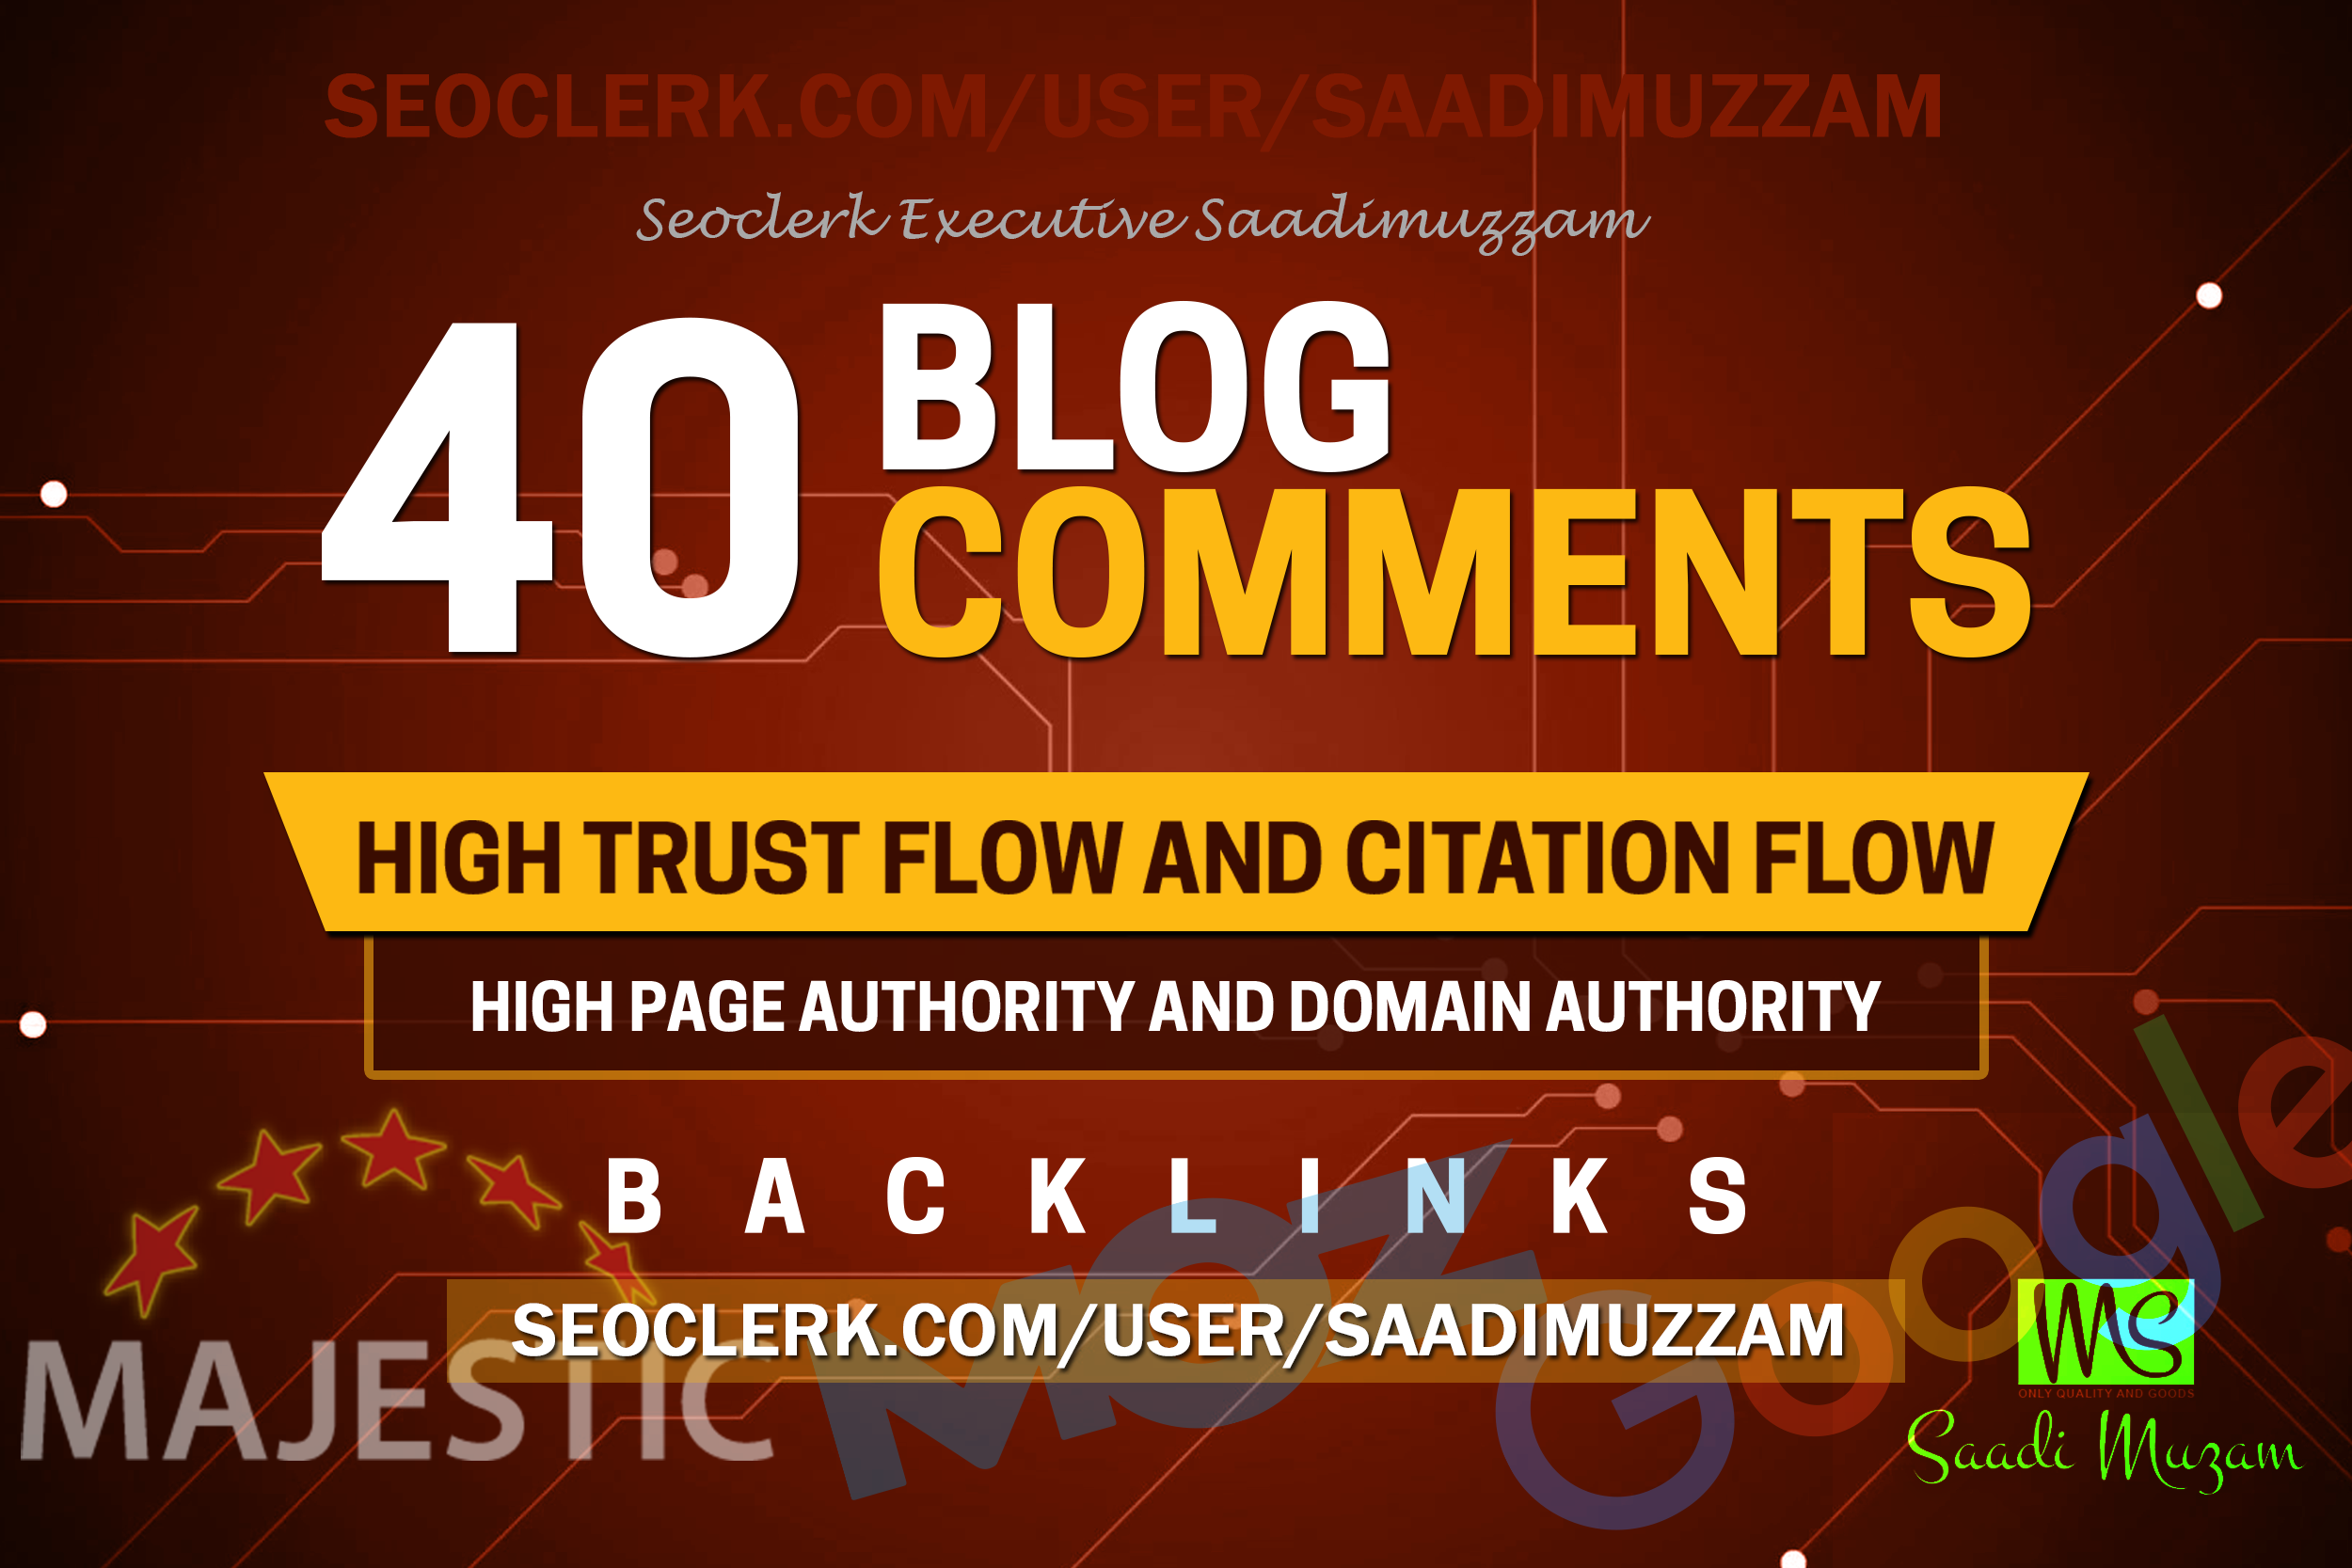 We provide the 40 high quality blog comments